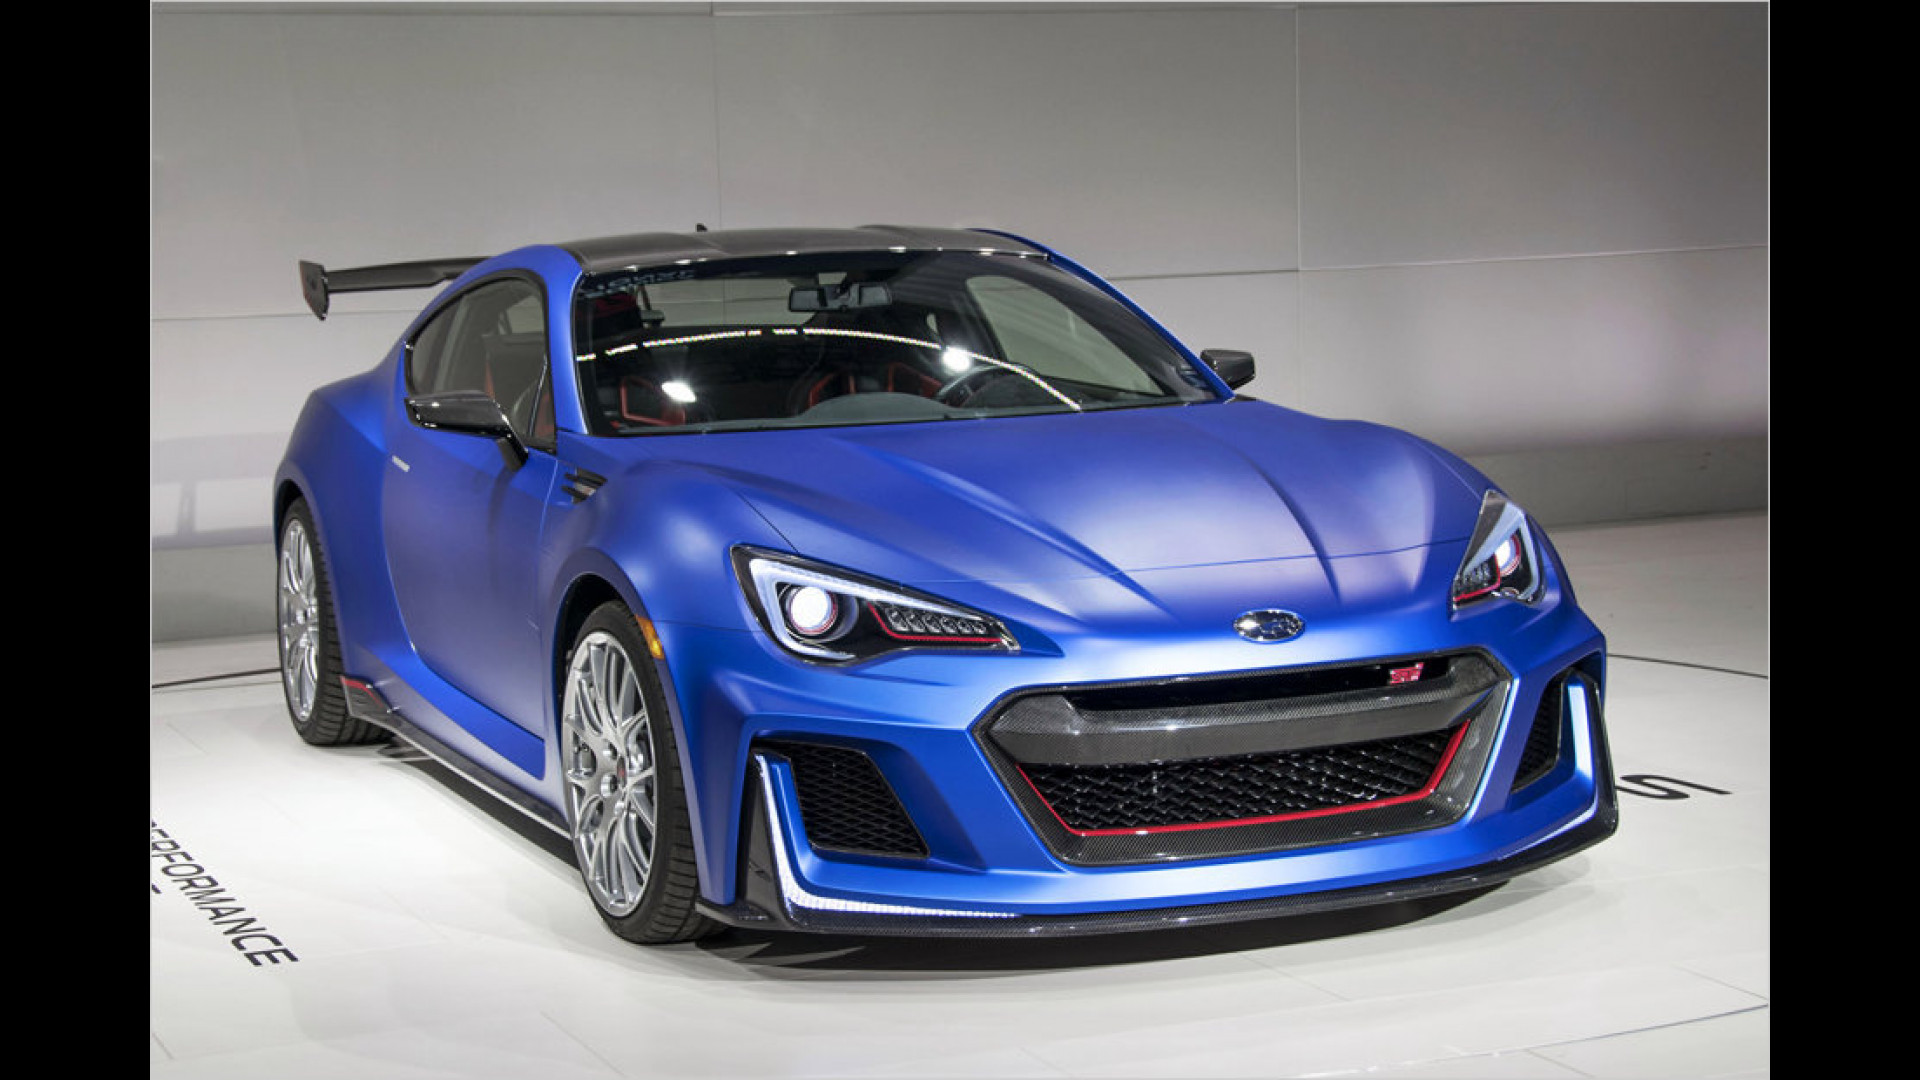 2020 Subaru Brz Sti Exterior and Interior